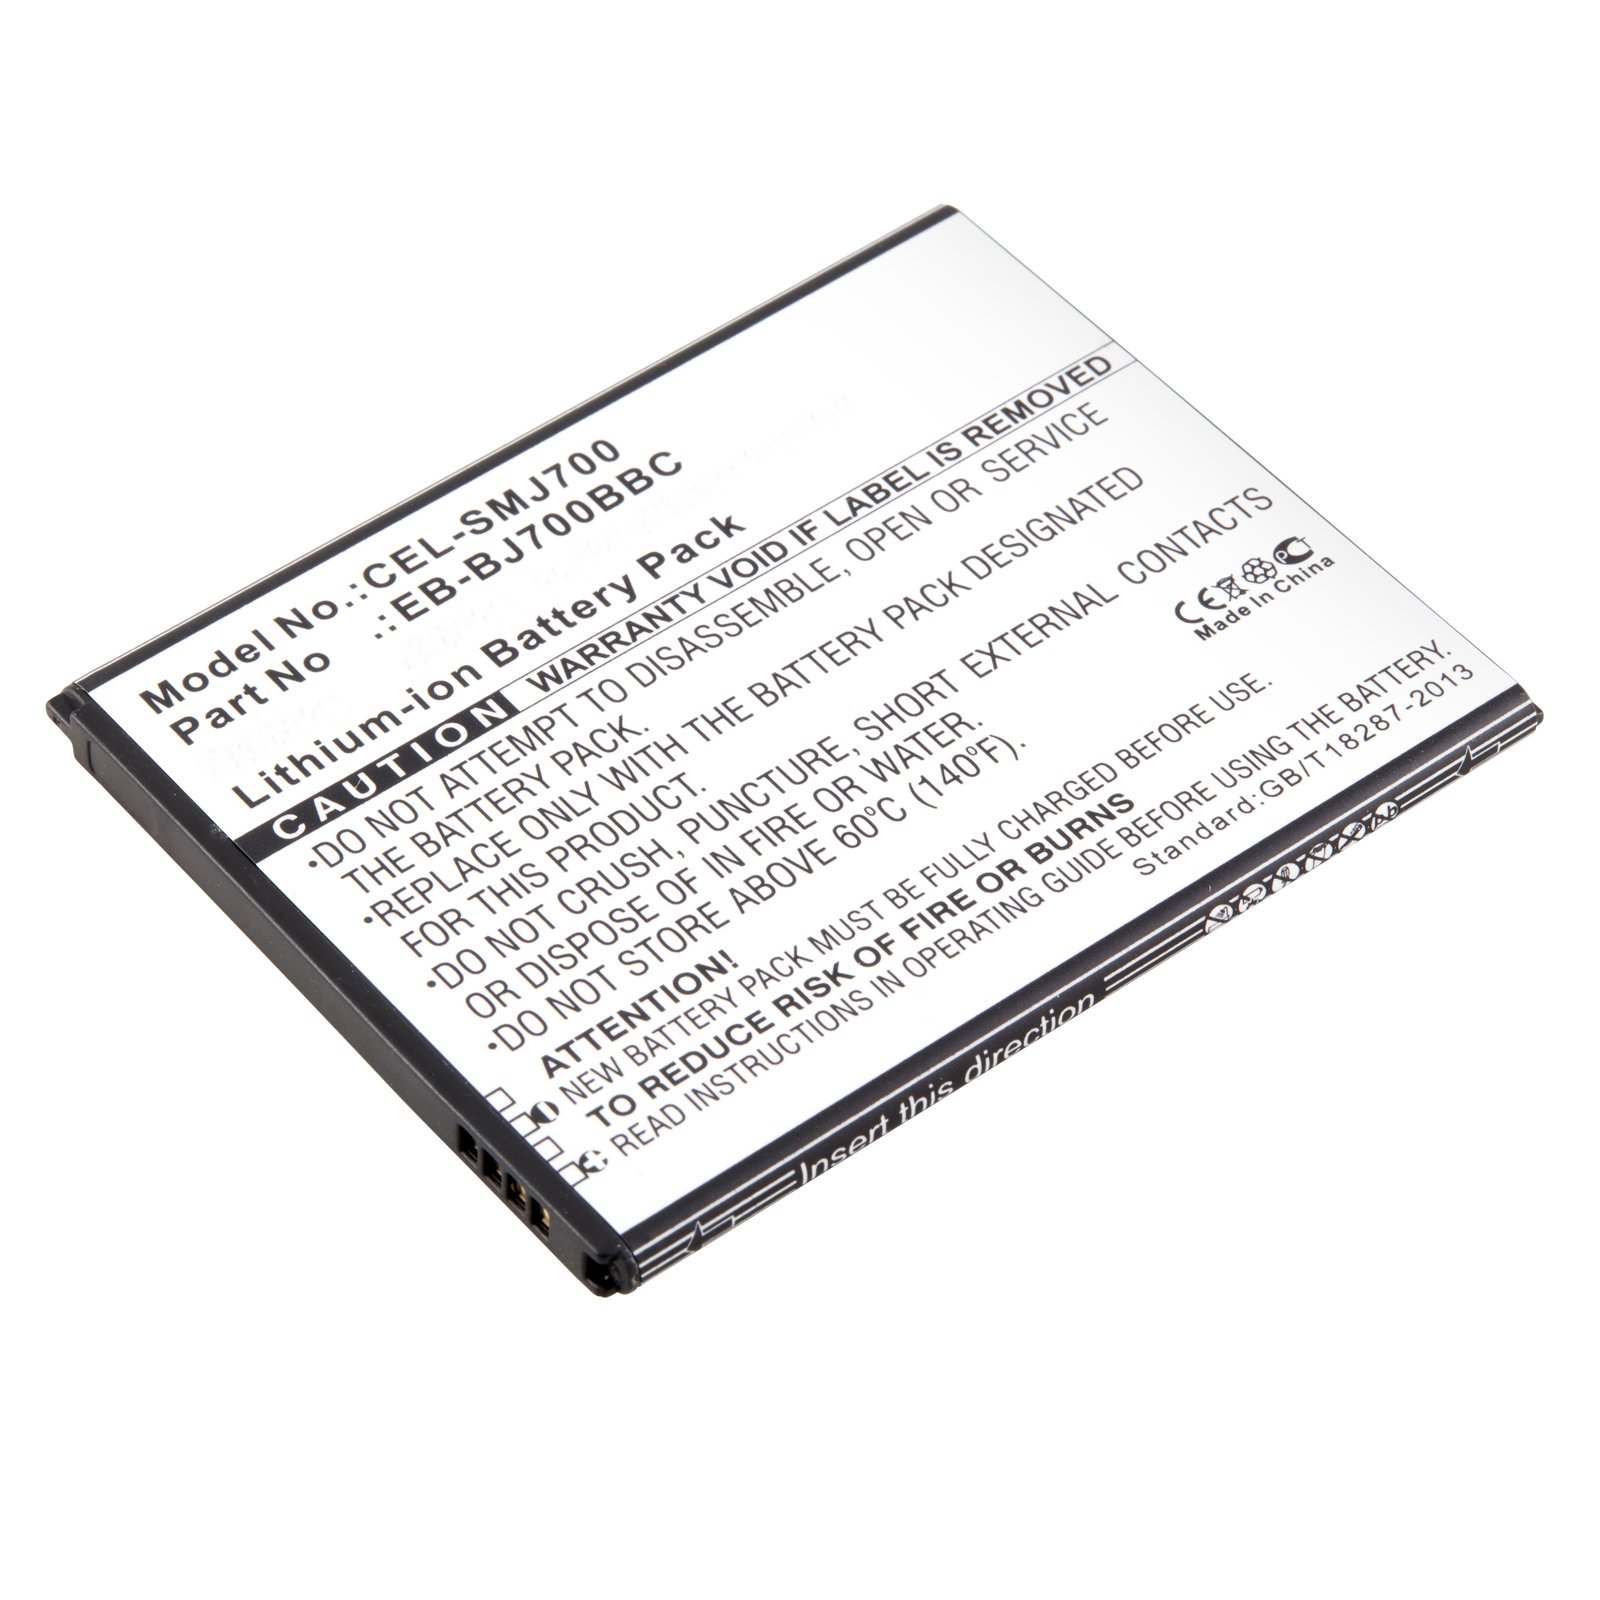 replacement samsung eb-bj700bbu cell phone battery